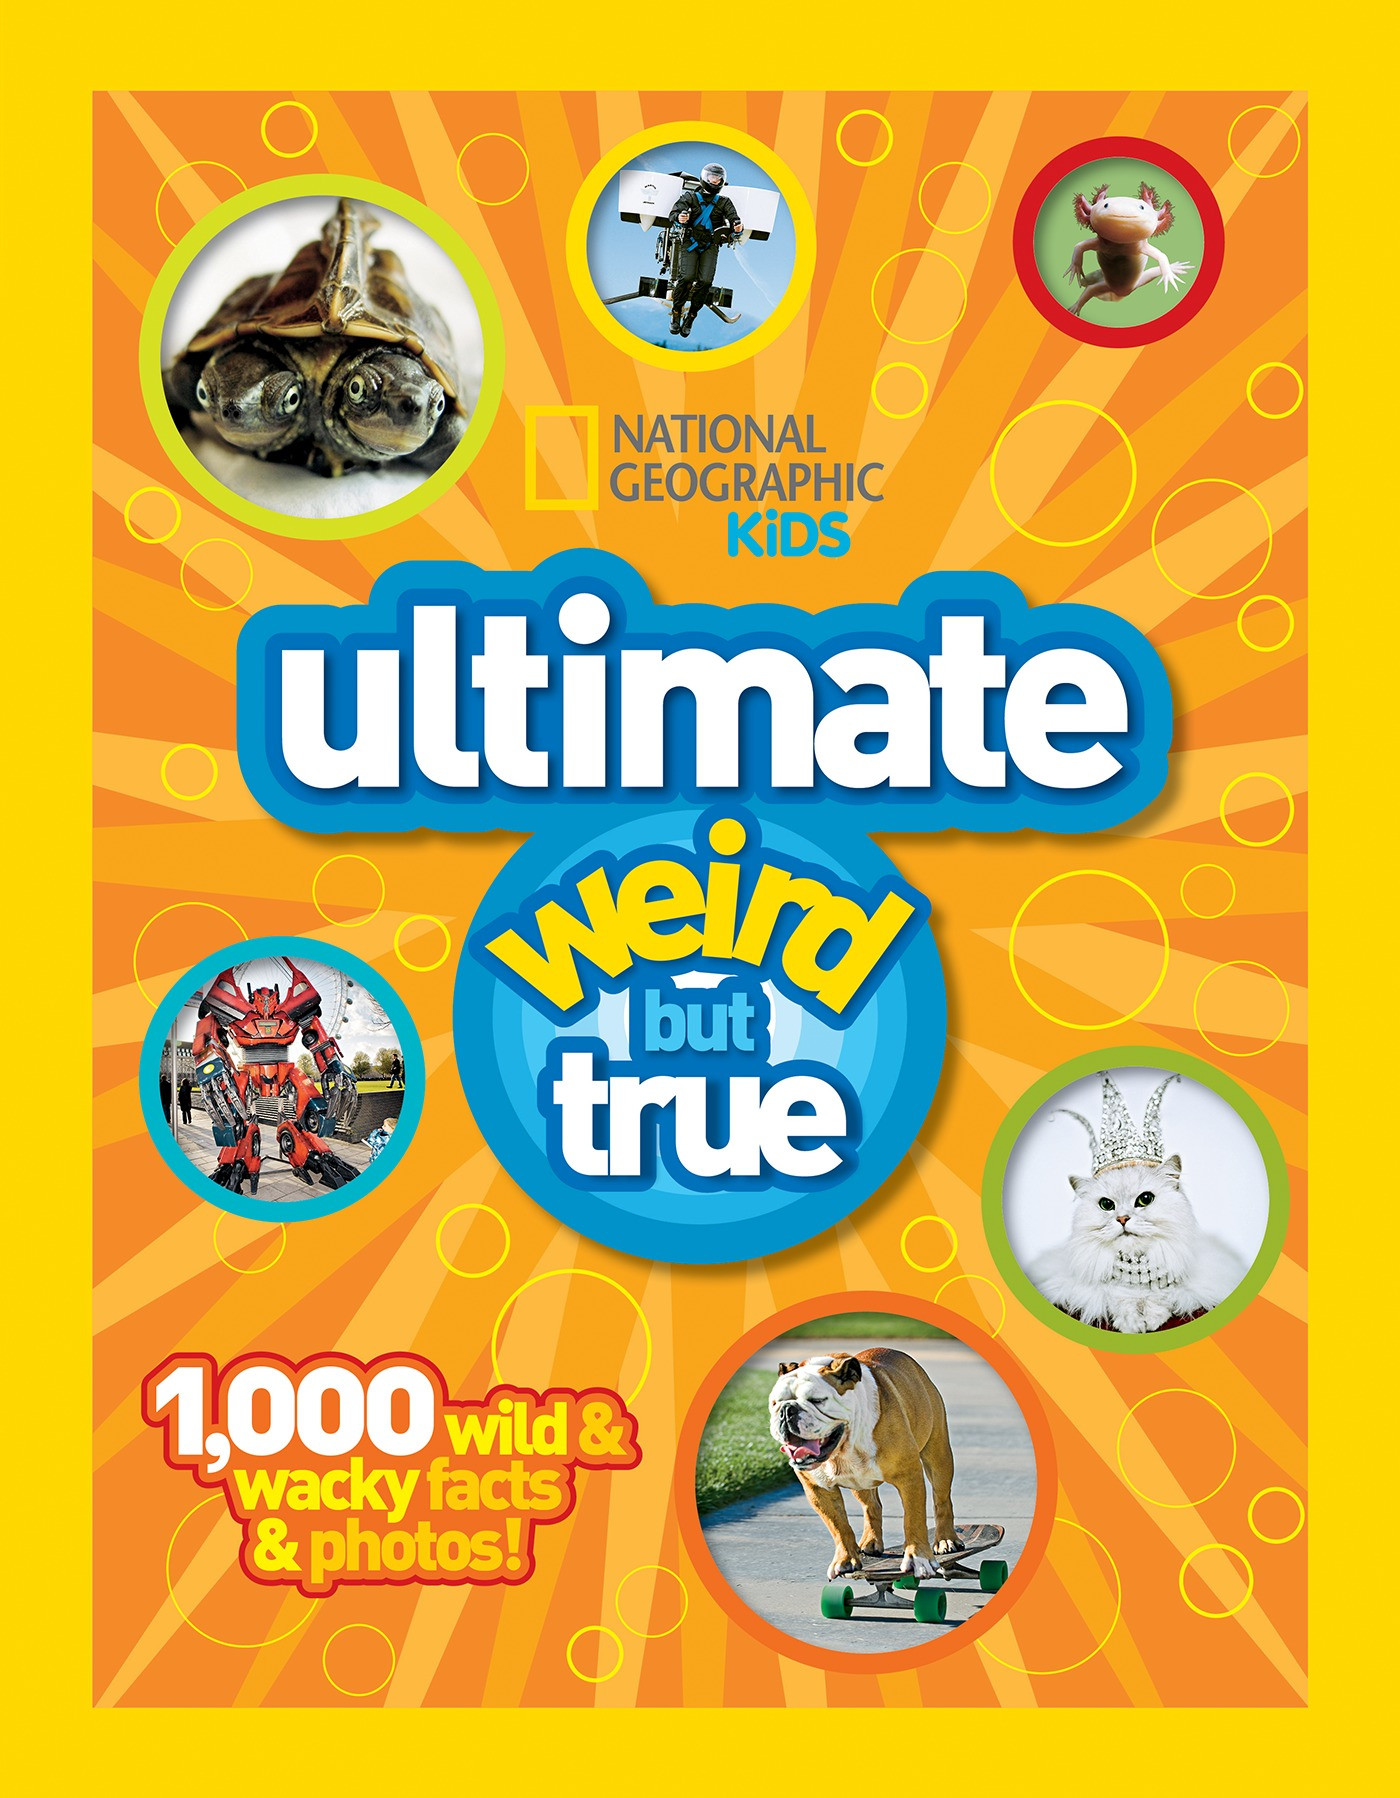 National Geographic Kids Ultimate Weird but True : 1,000 Wild & Wacky Facts and Photos by Natl Geographic Childrens